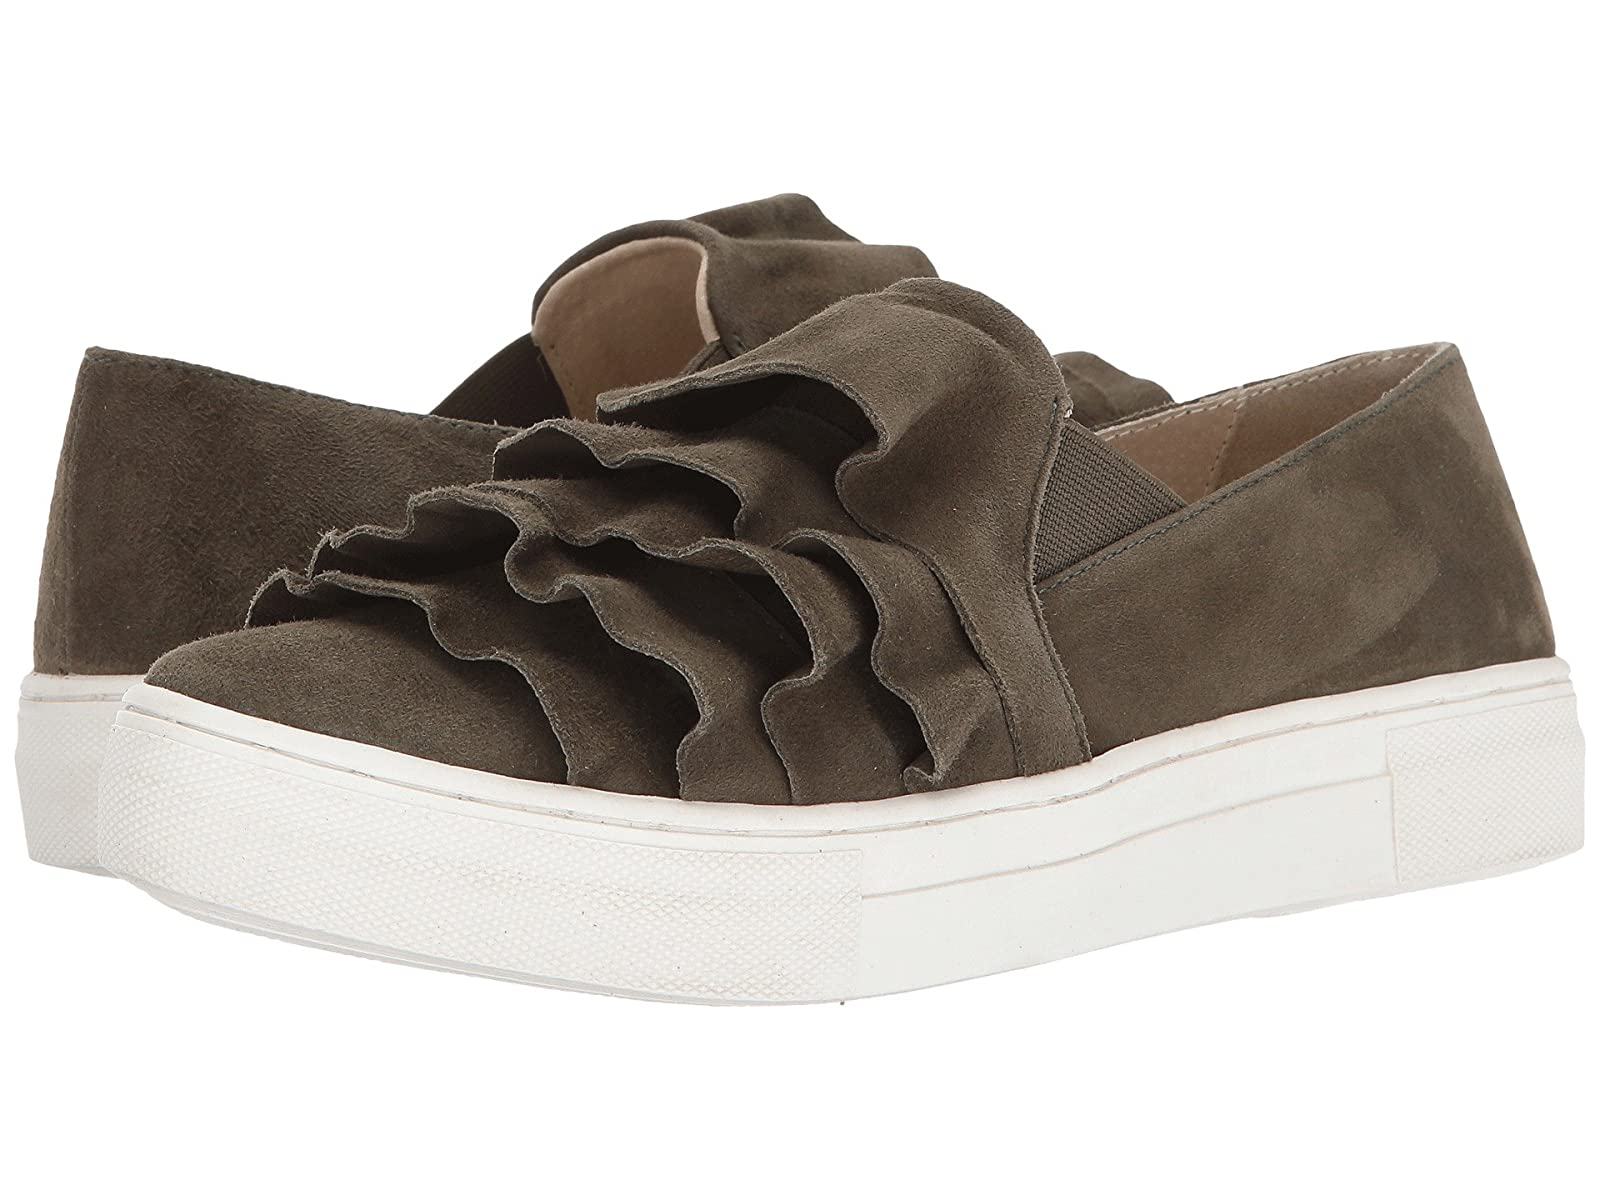 Seychelles QuakeCheap and distinctive eye-catching shoes